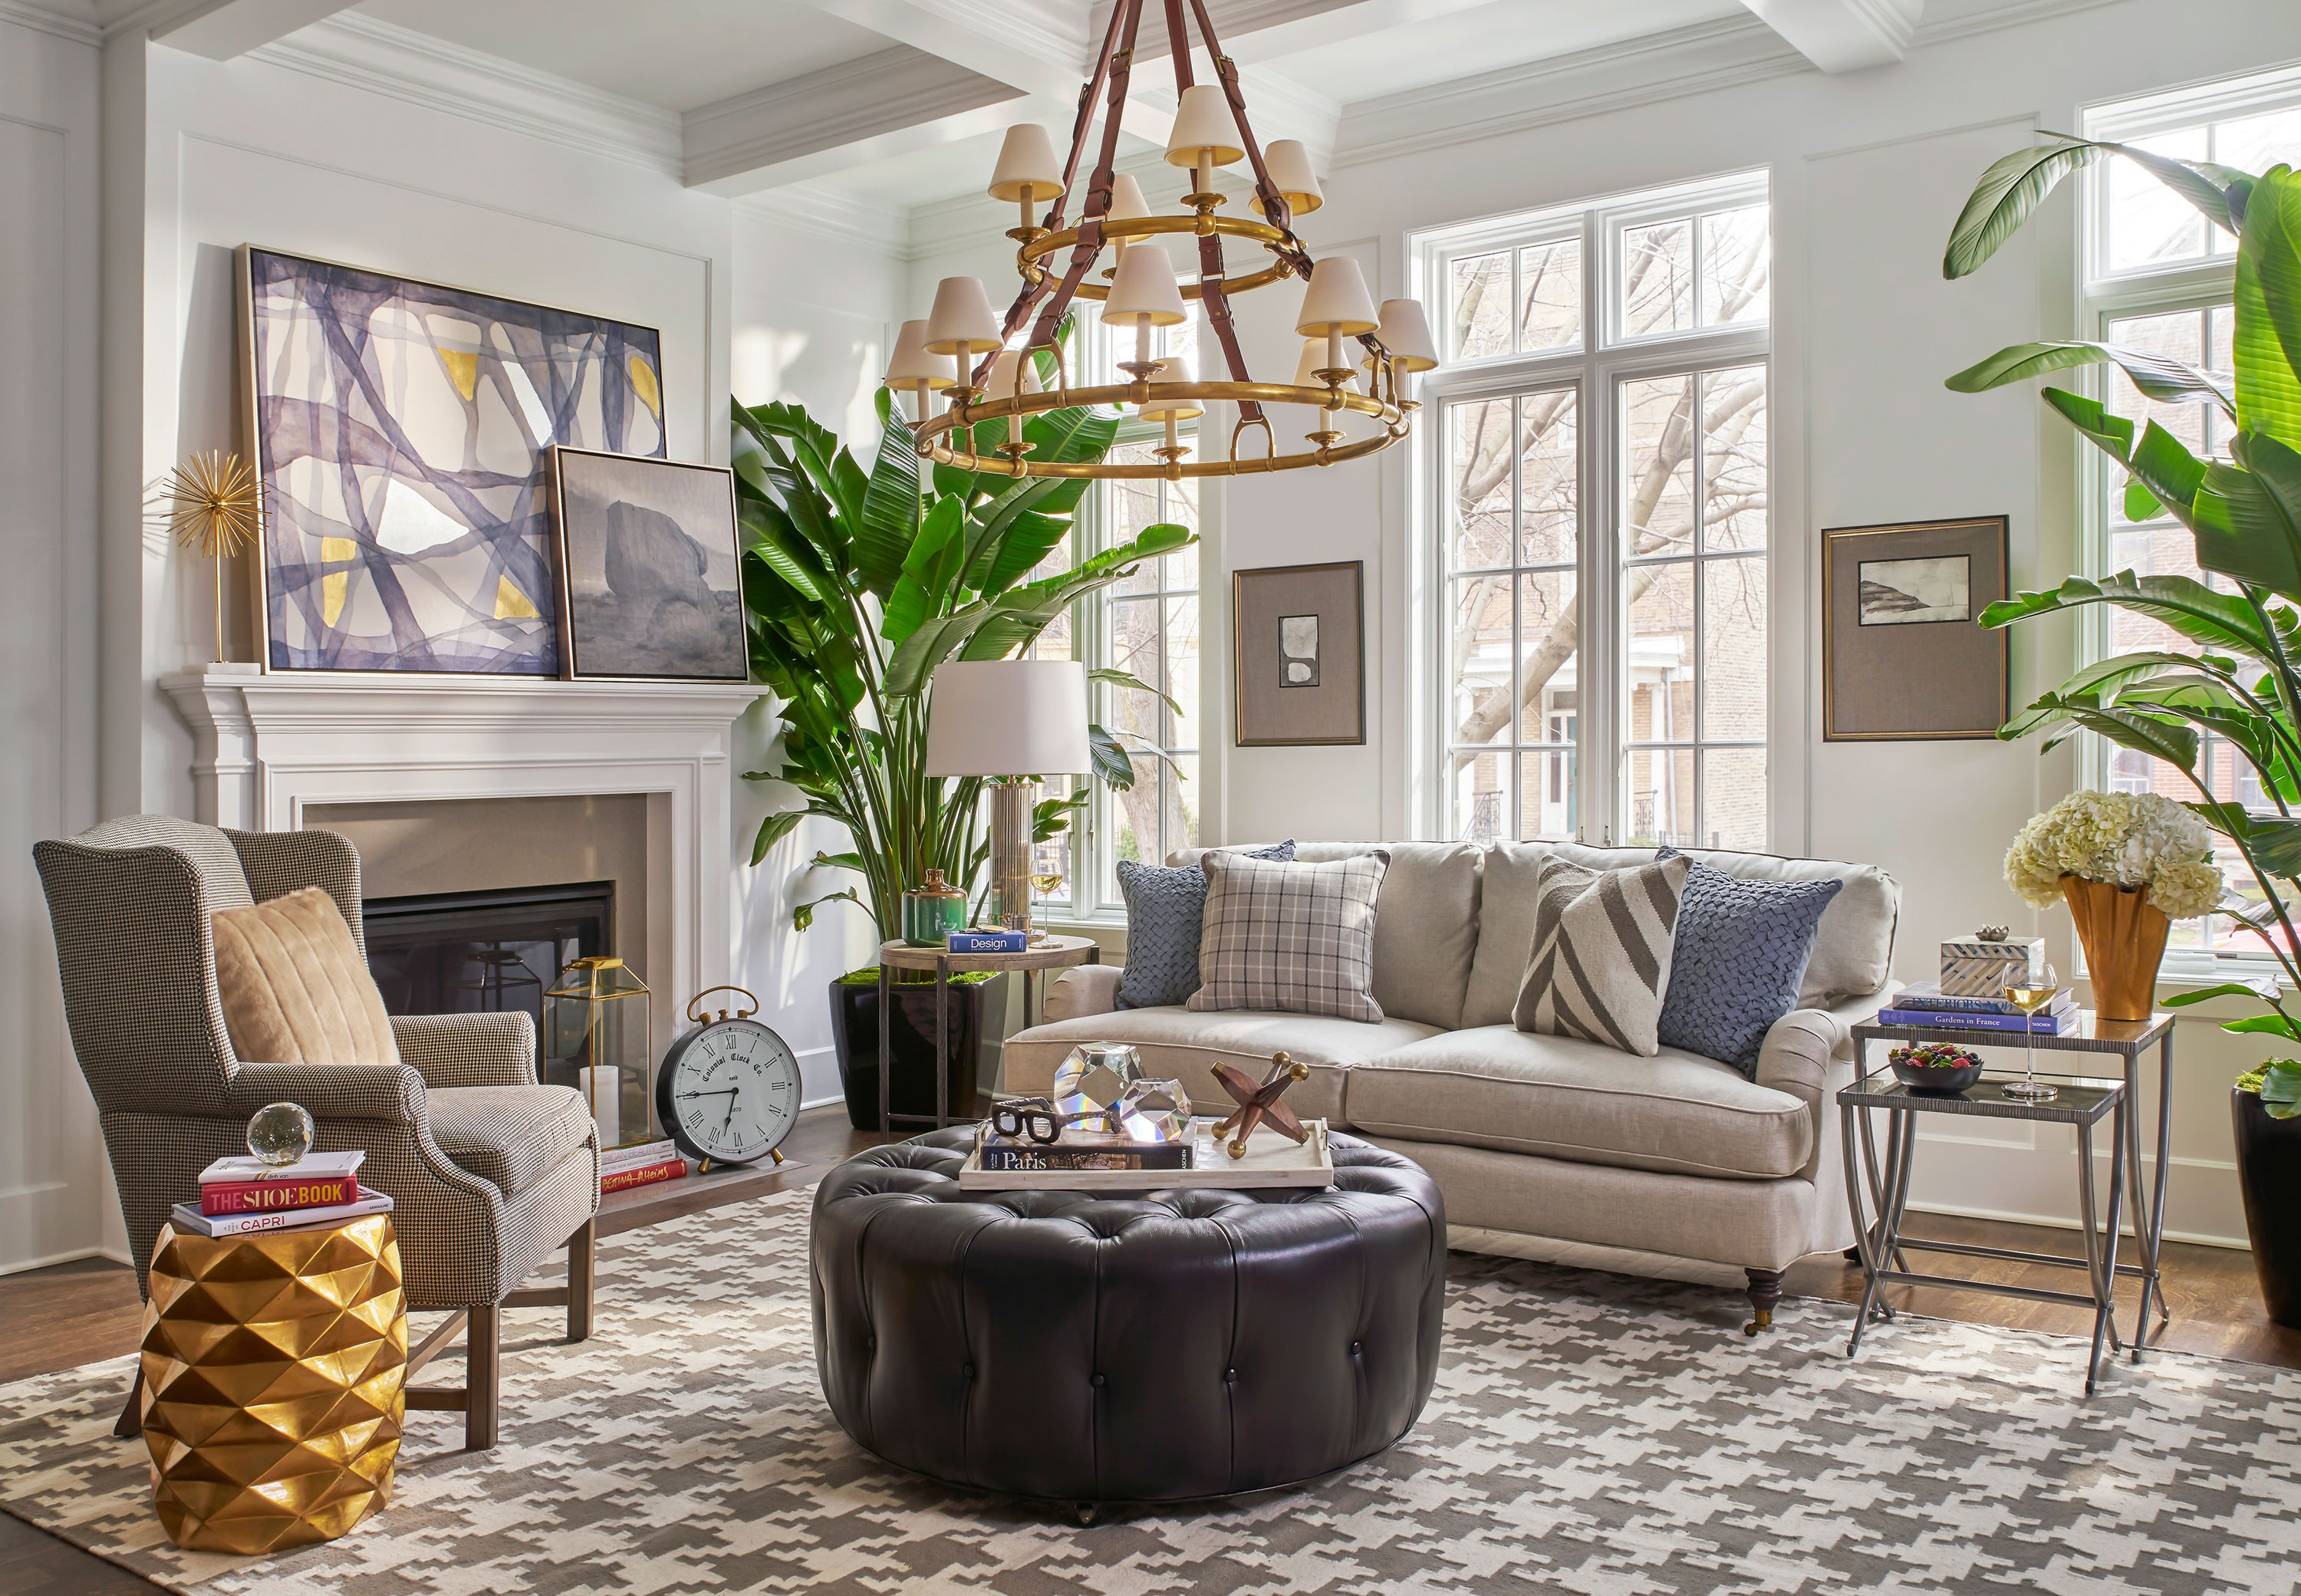 """To create a visually appealing space without bringing in too many colors, incorporate a variety of textures and patterns. Try houndstooth, plaid, or basket-weave patterns in neutral colors. To add texture, experiment with leather, wool, or faux fur for a sophisticated look."""